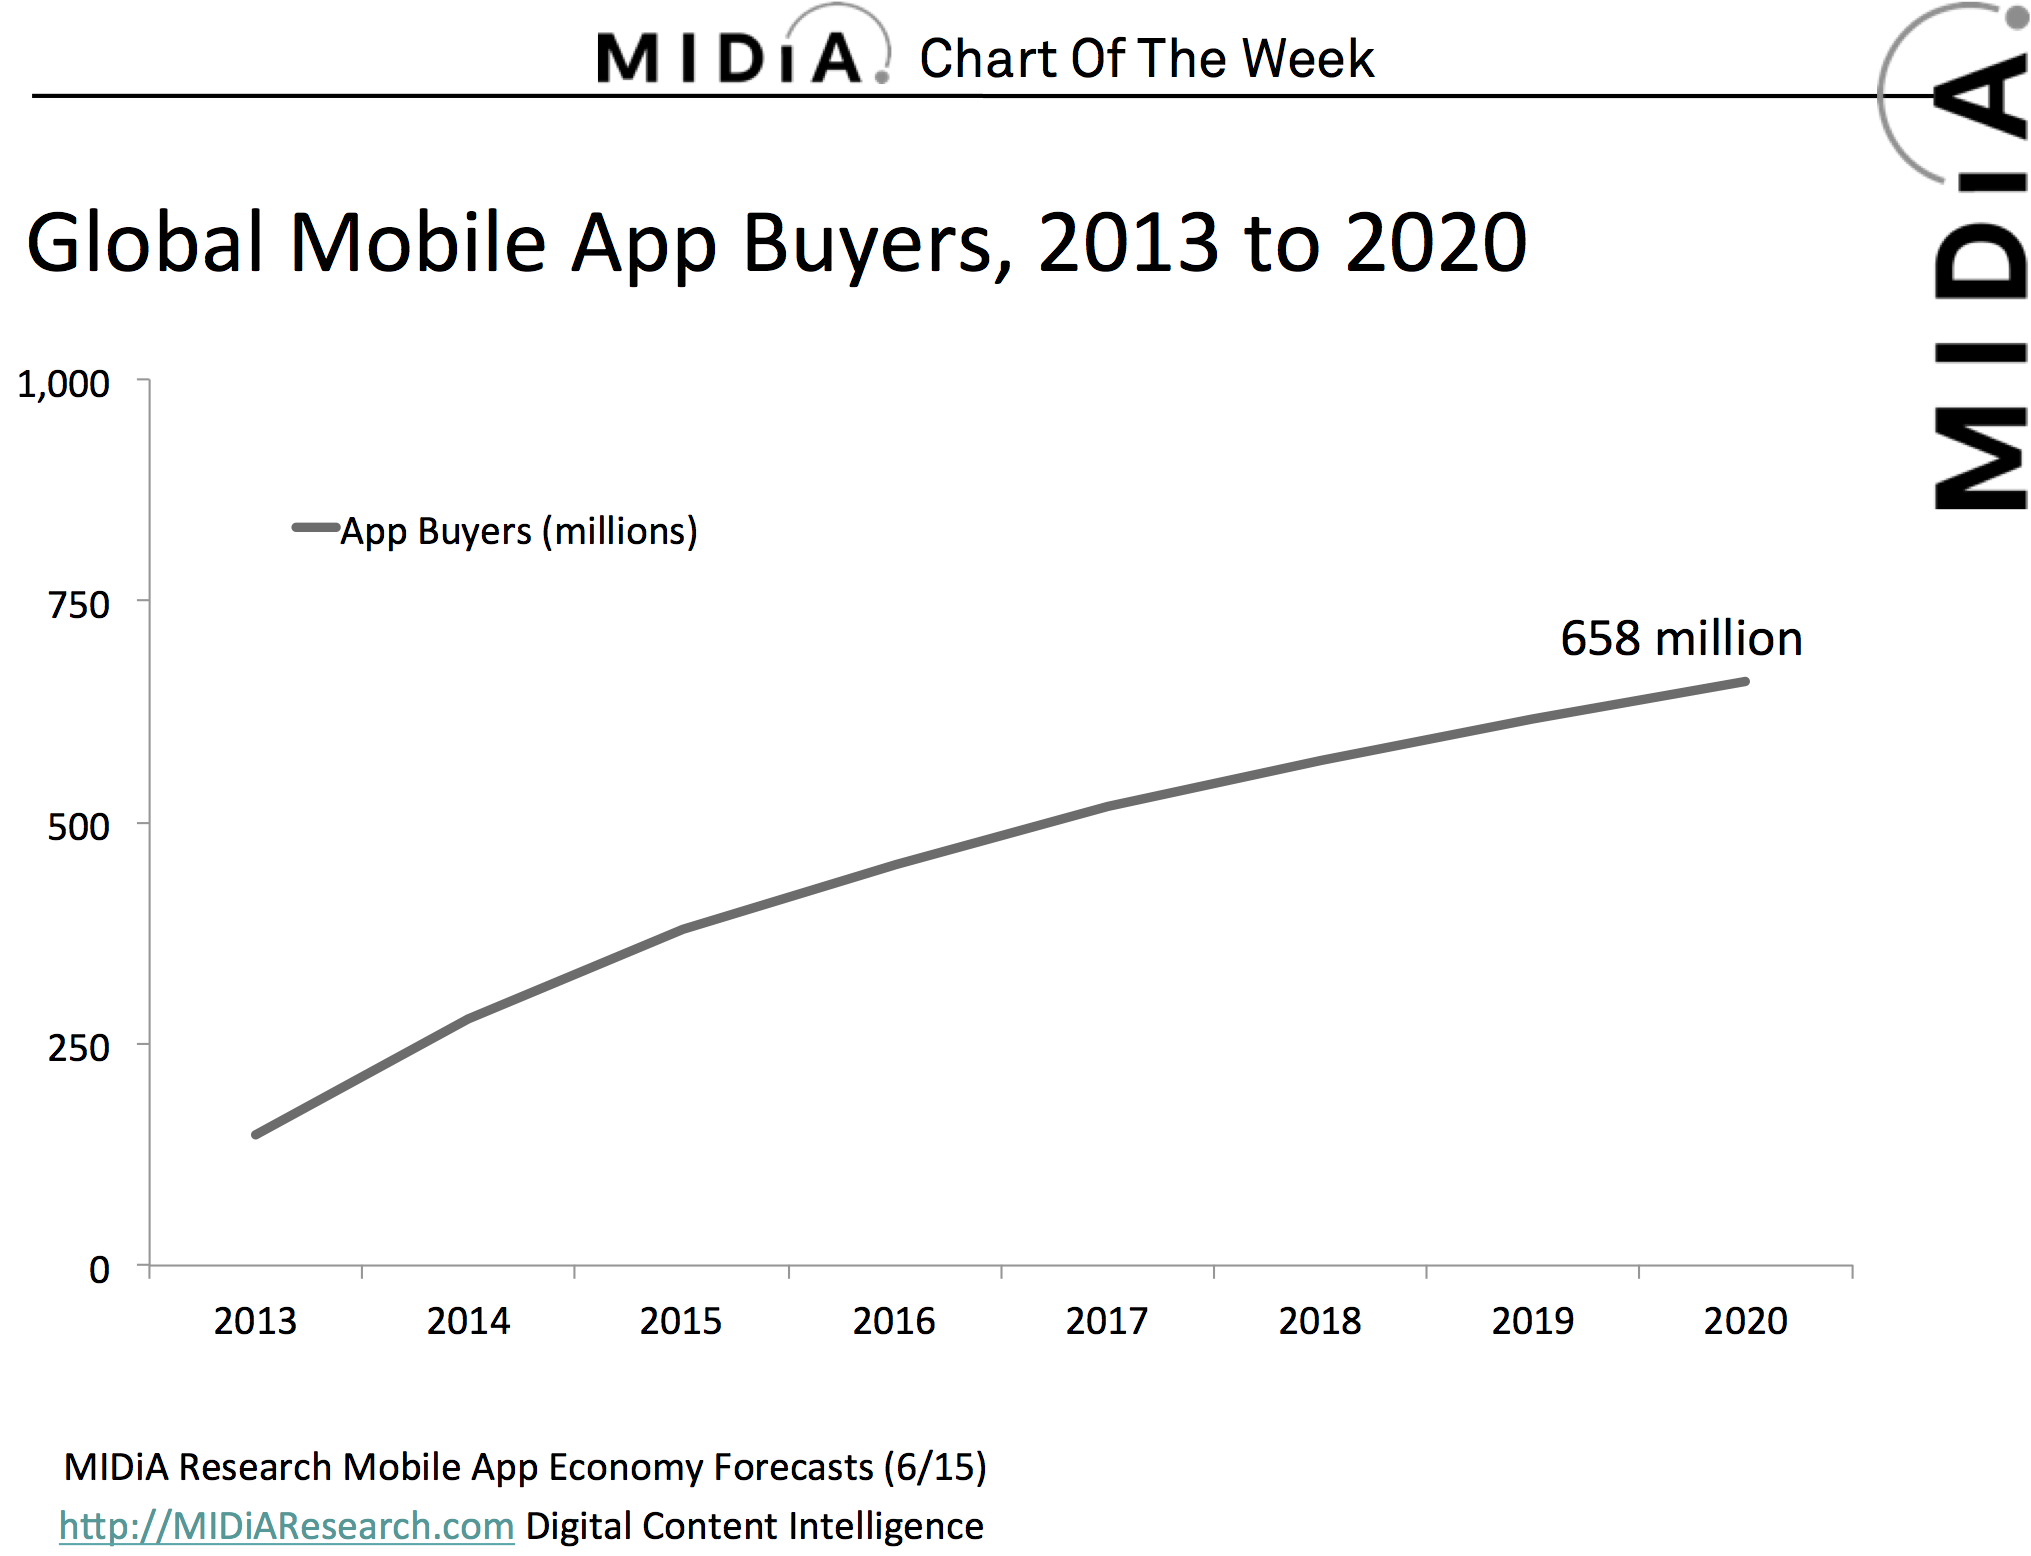 Cover image for MIDiA Research Chart Of The Week: Global Mobile App Buyers 2013 To 2020